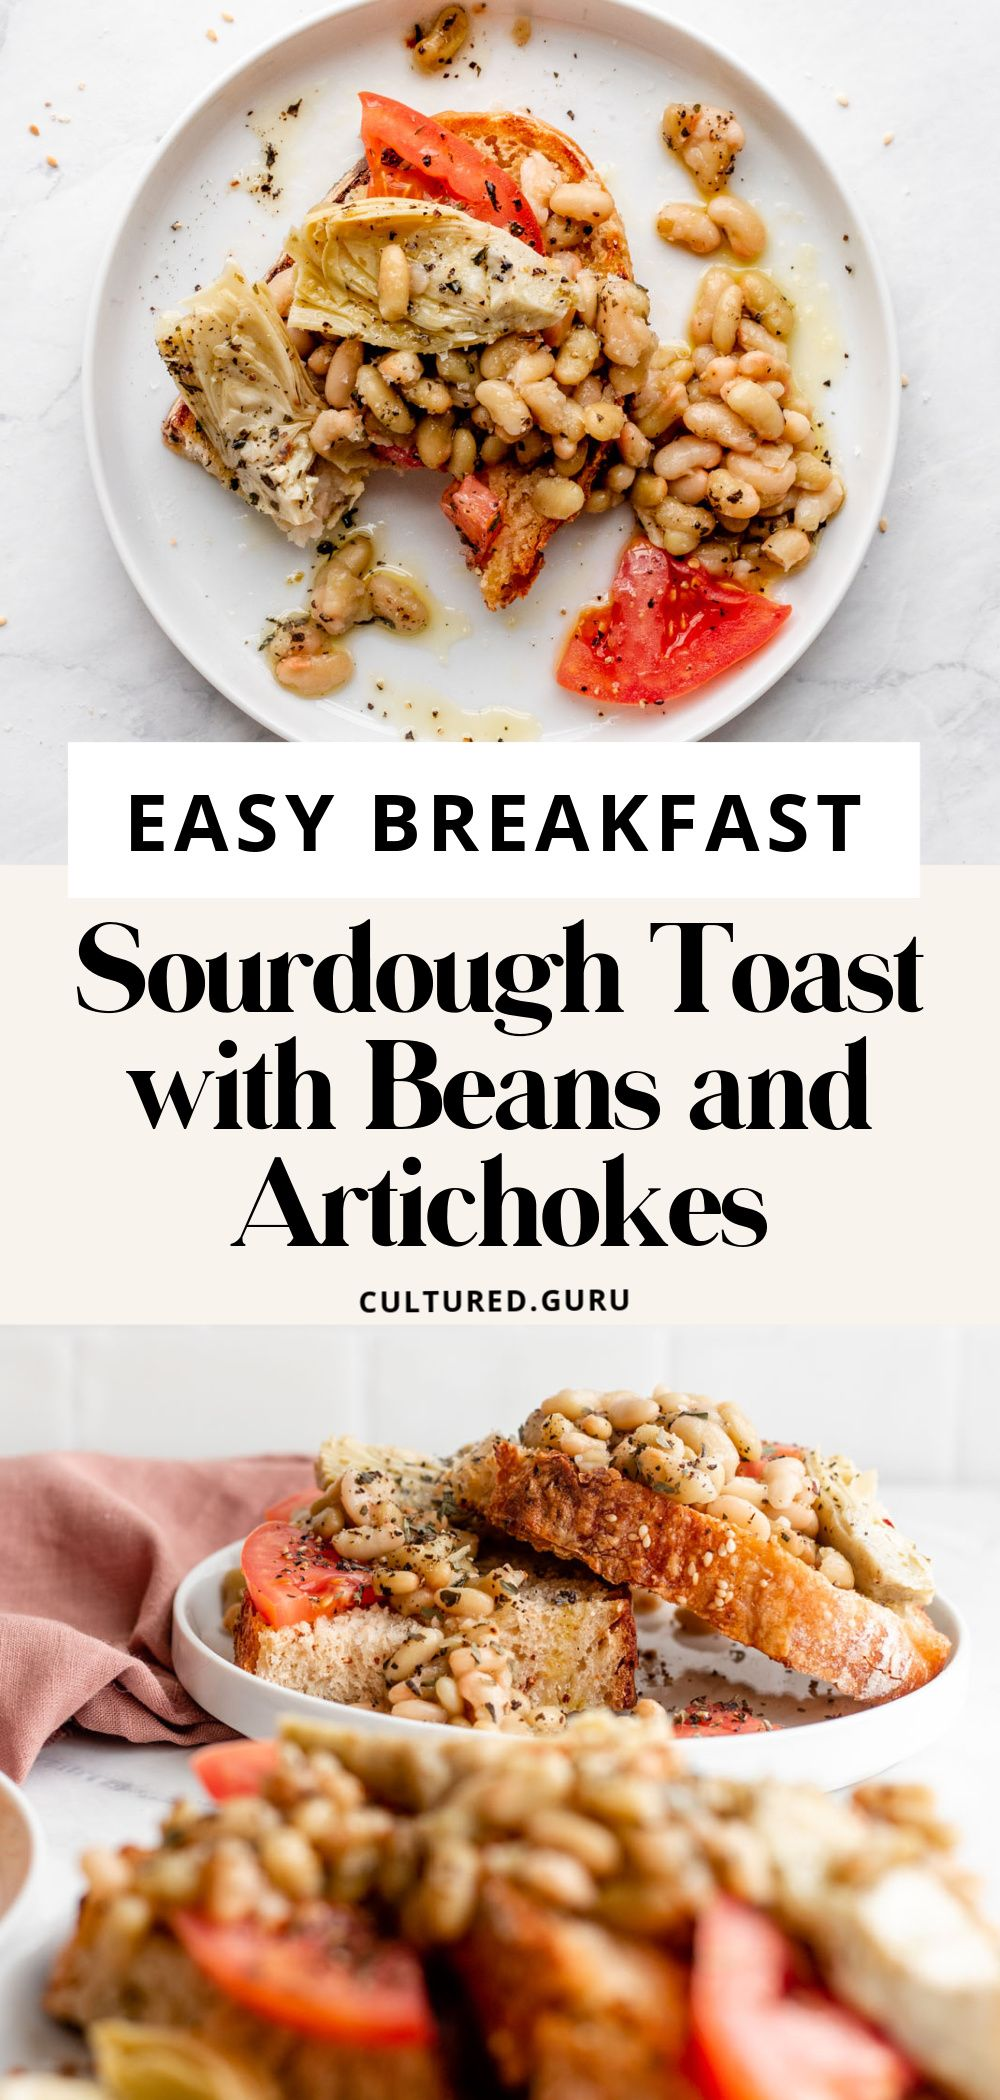 Easy Sourdough Breakfast Toasts With Beans And Artichokes Recipe In 2021 Healthy Breakfast Recipes Easy Healthy Breakfast Recipes Healthy Vegan Breakfast